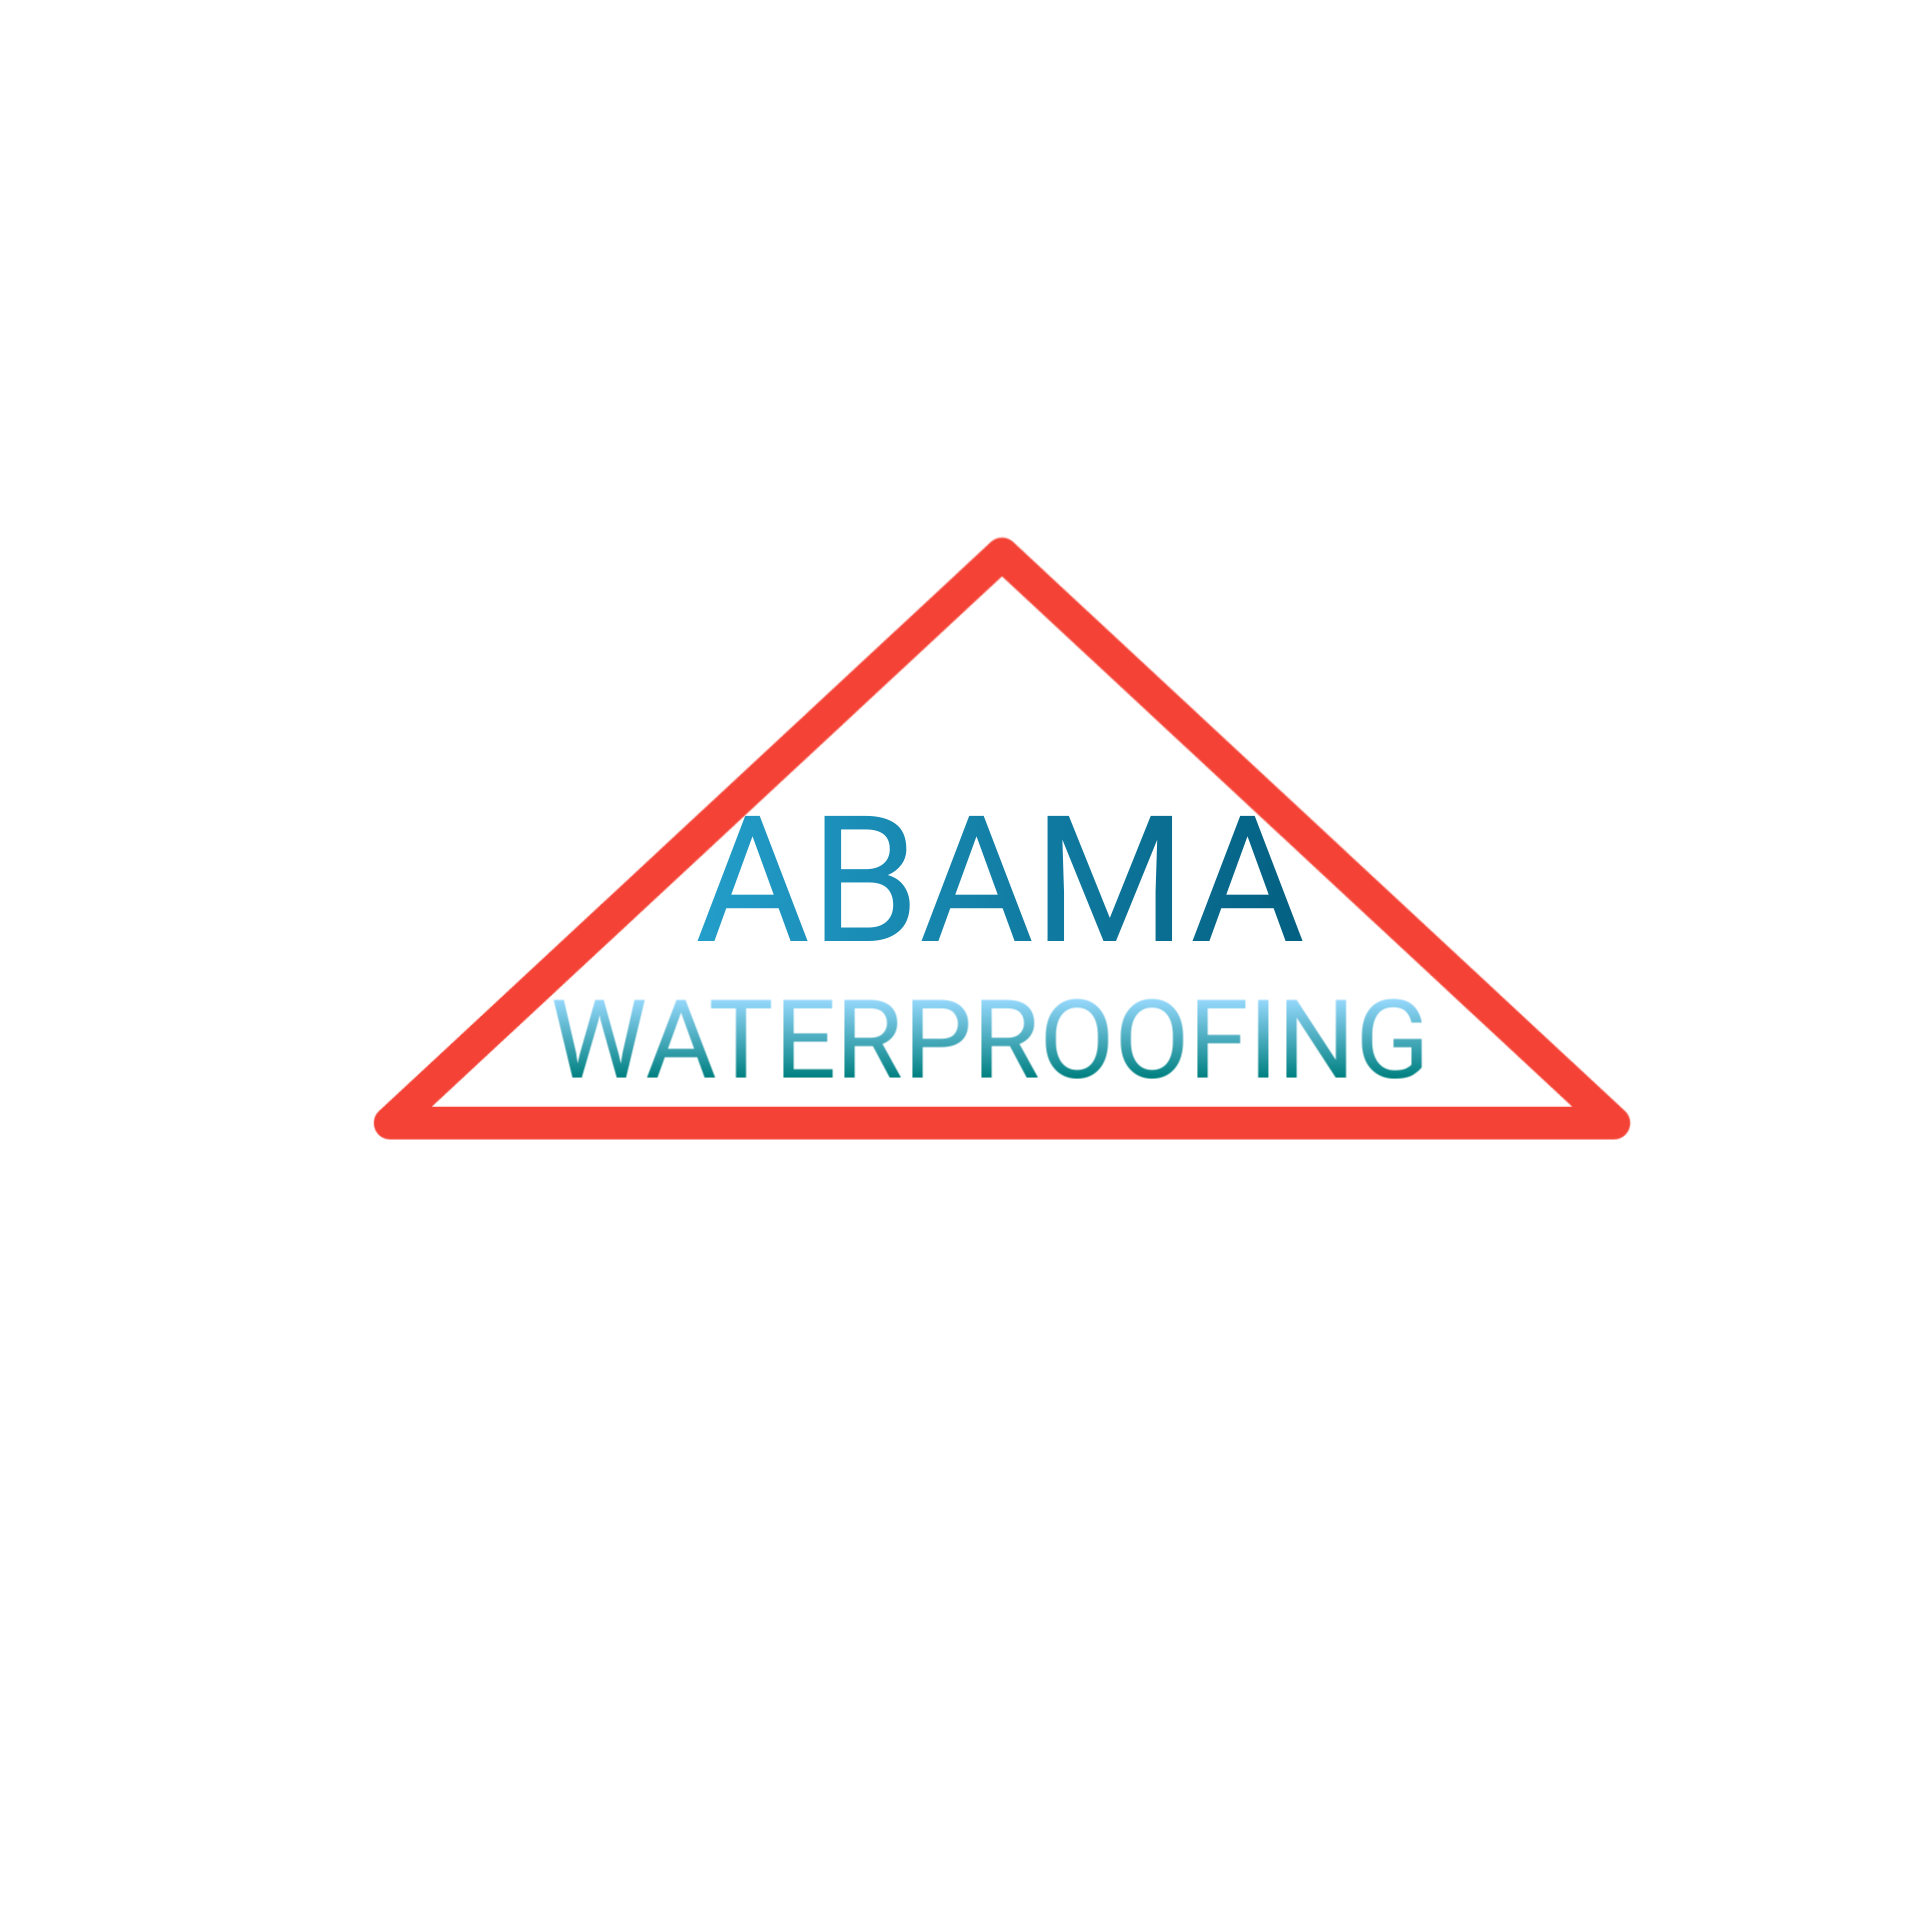 Abama waterproofing